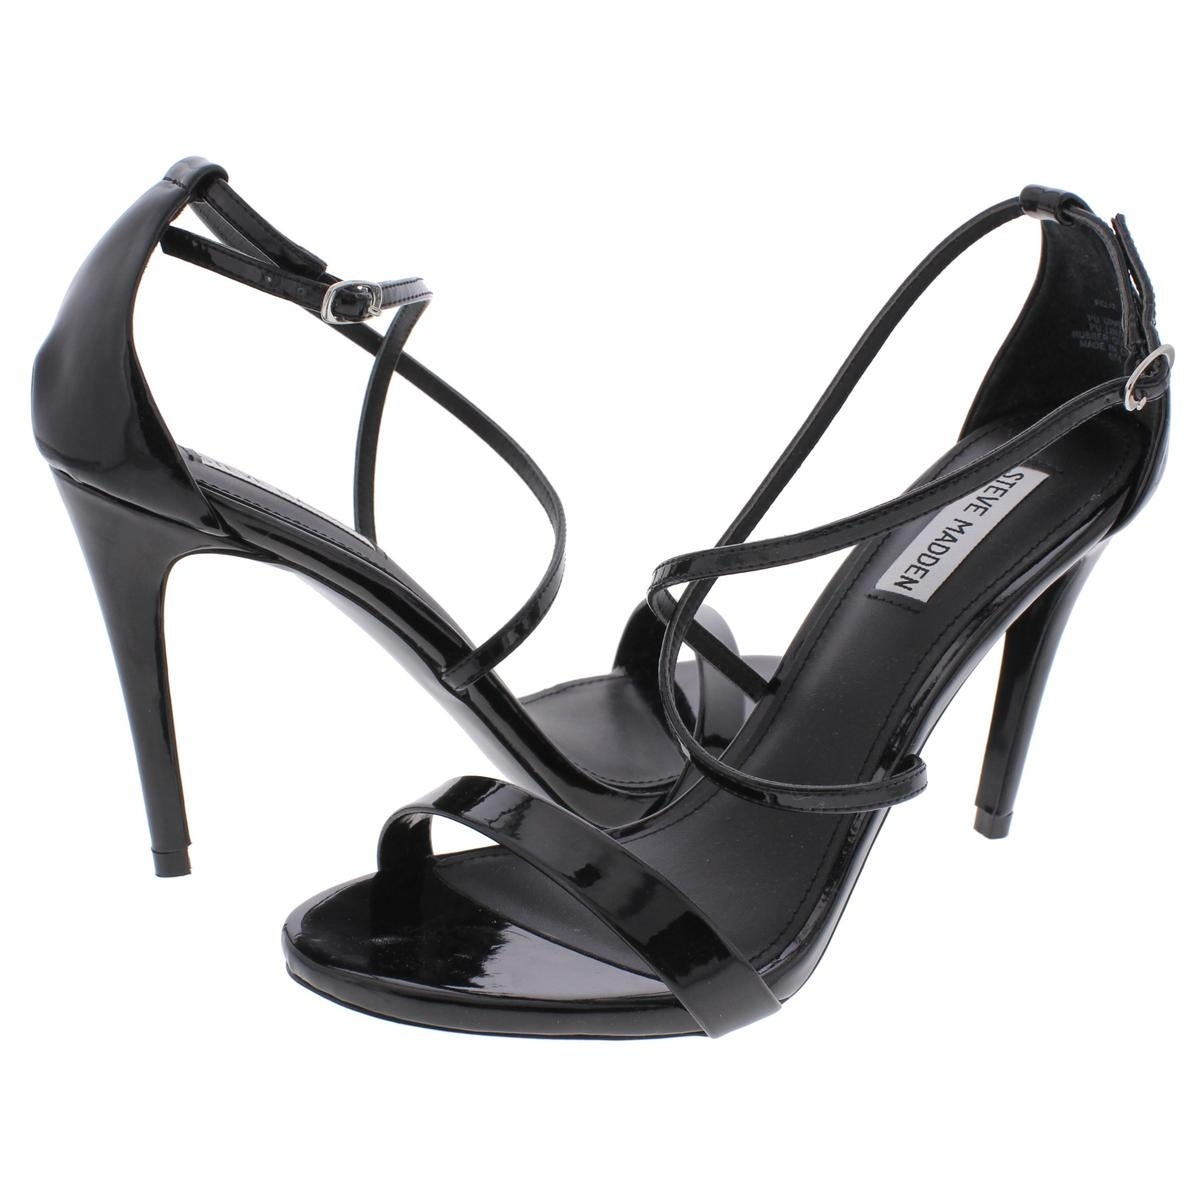 c1e899f3270 Shop Steve Madden Womens Feliz Heels Patent Ankle Strap - Free Shipping On  Orders Over  45 - Overstock - 17063211